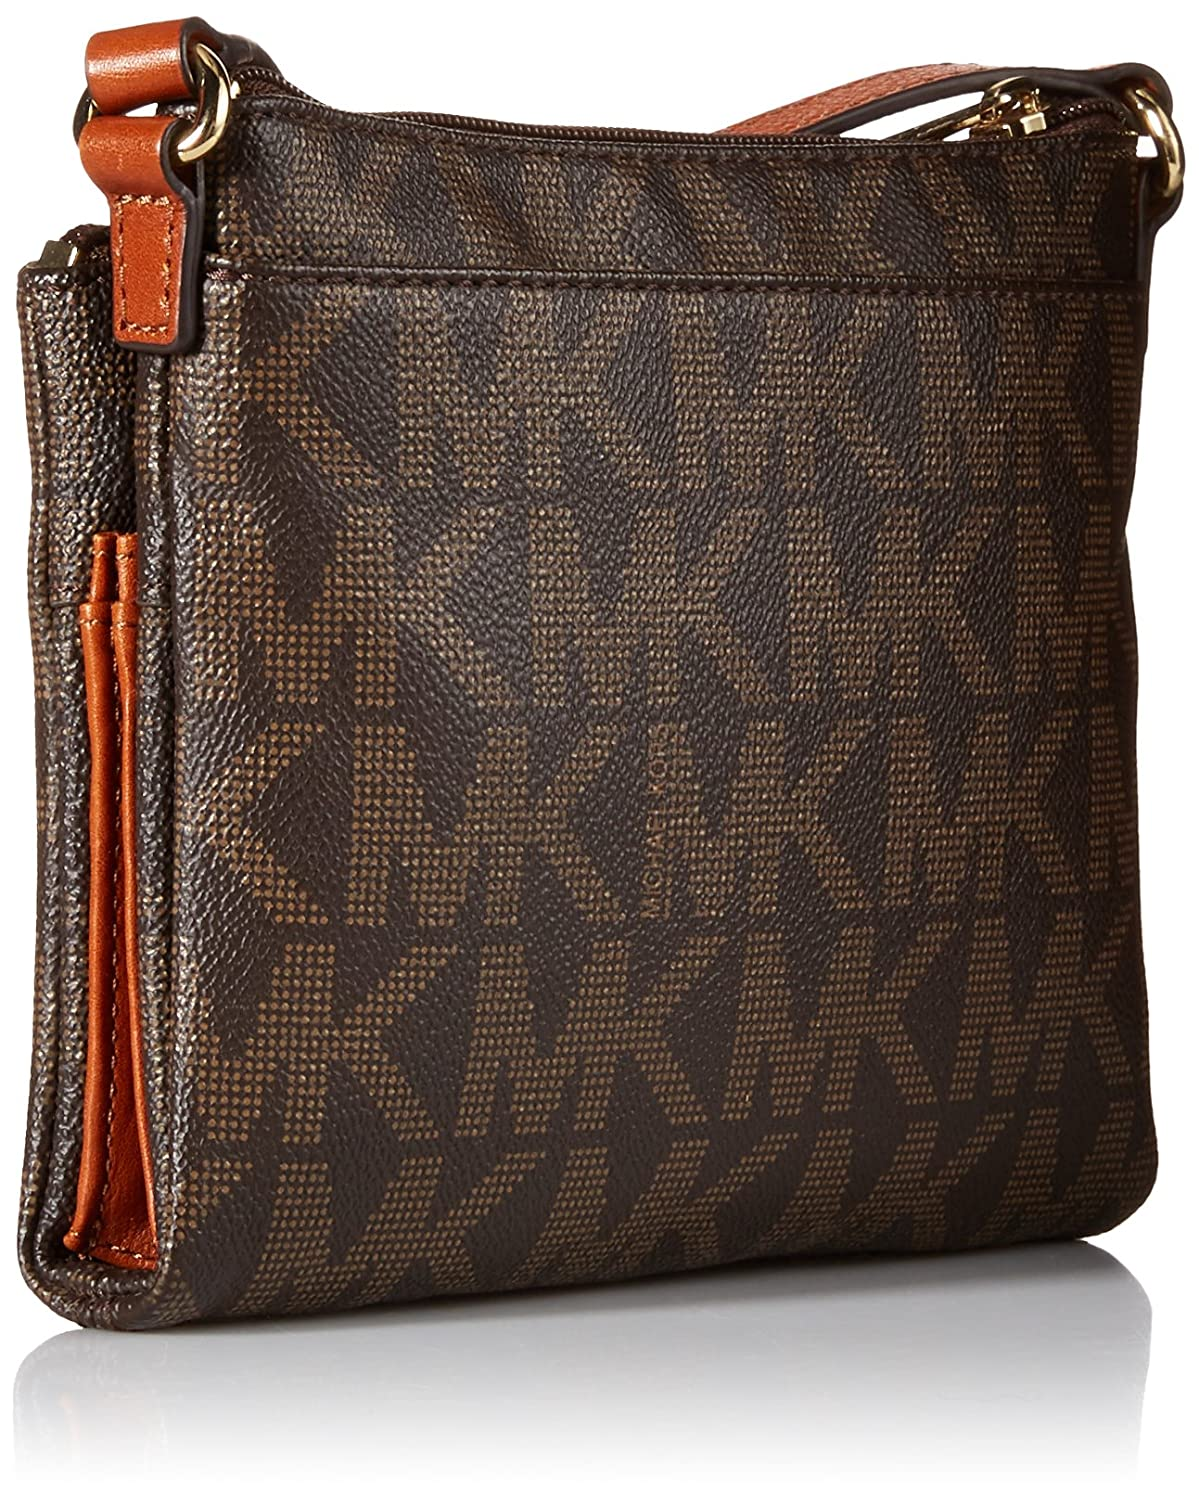 15284f4cd6ef ... Leather Michael Kors Fulton Large Crossbody MK Signature PVC Brown  Handbags Amazon .com ...